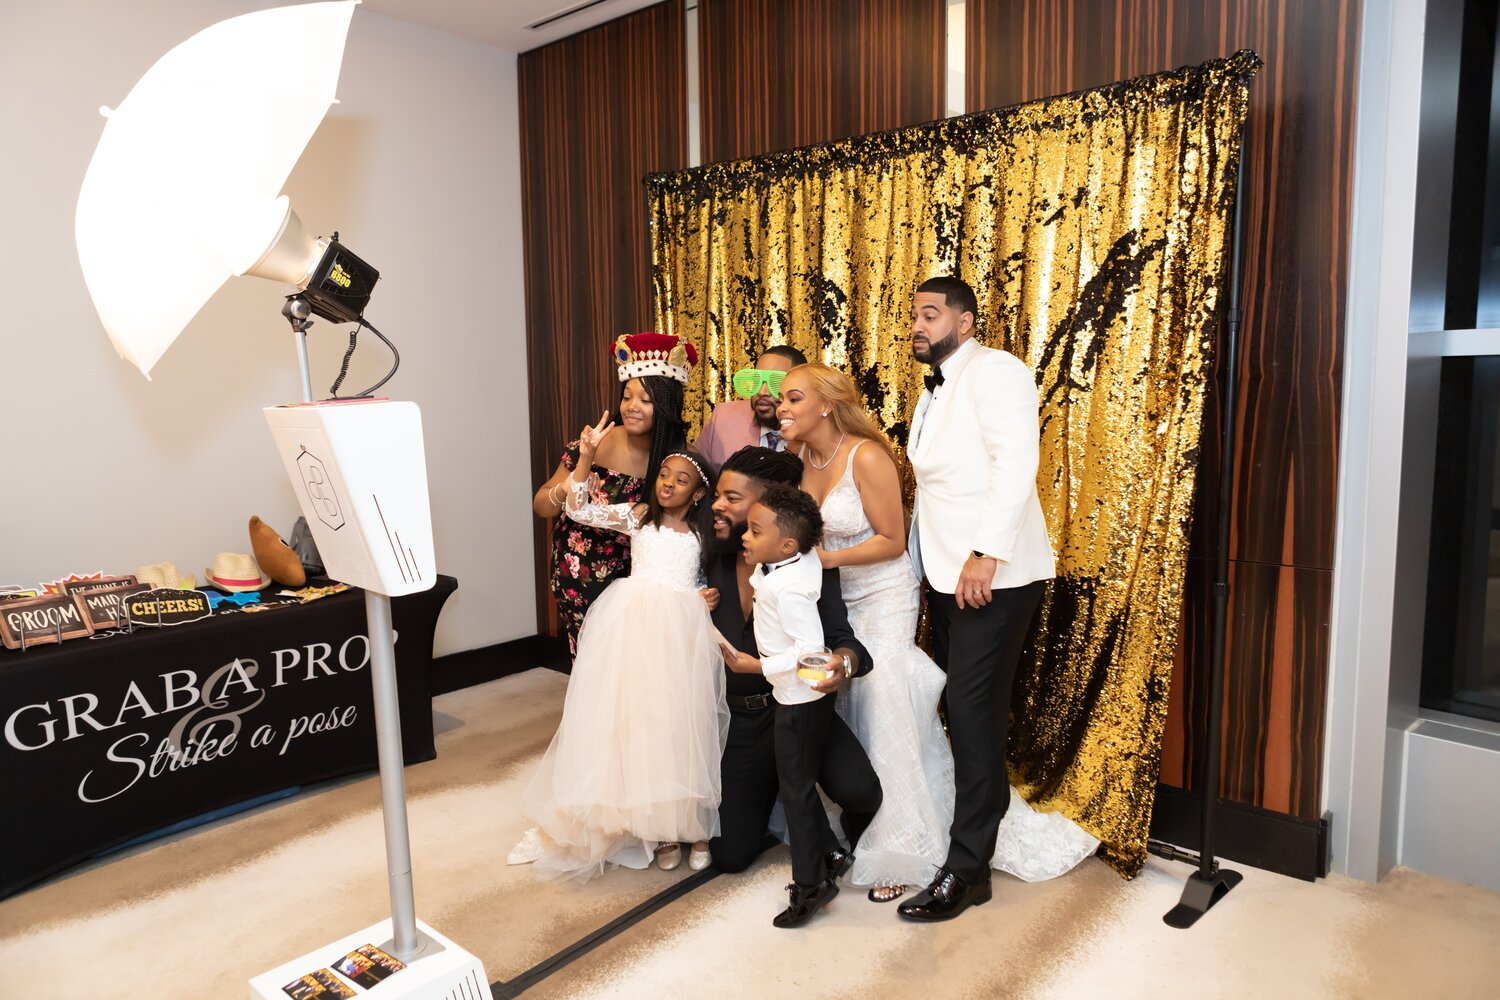 The Benefits of Adding Wedding Photo Booths